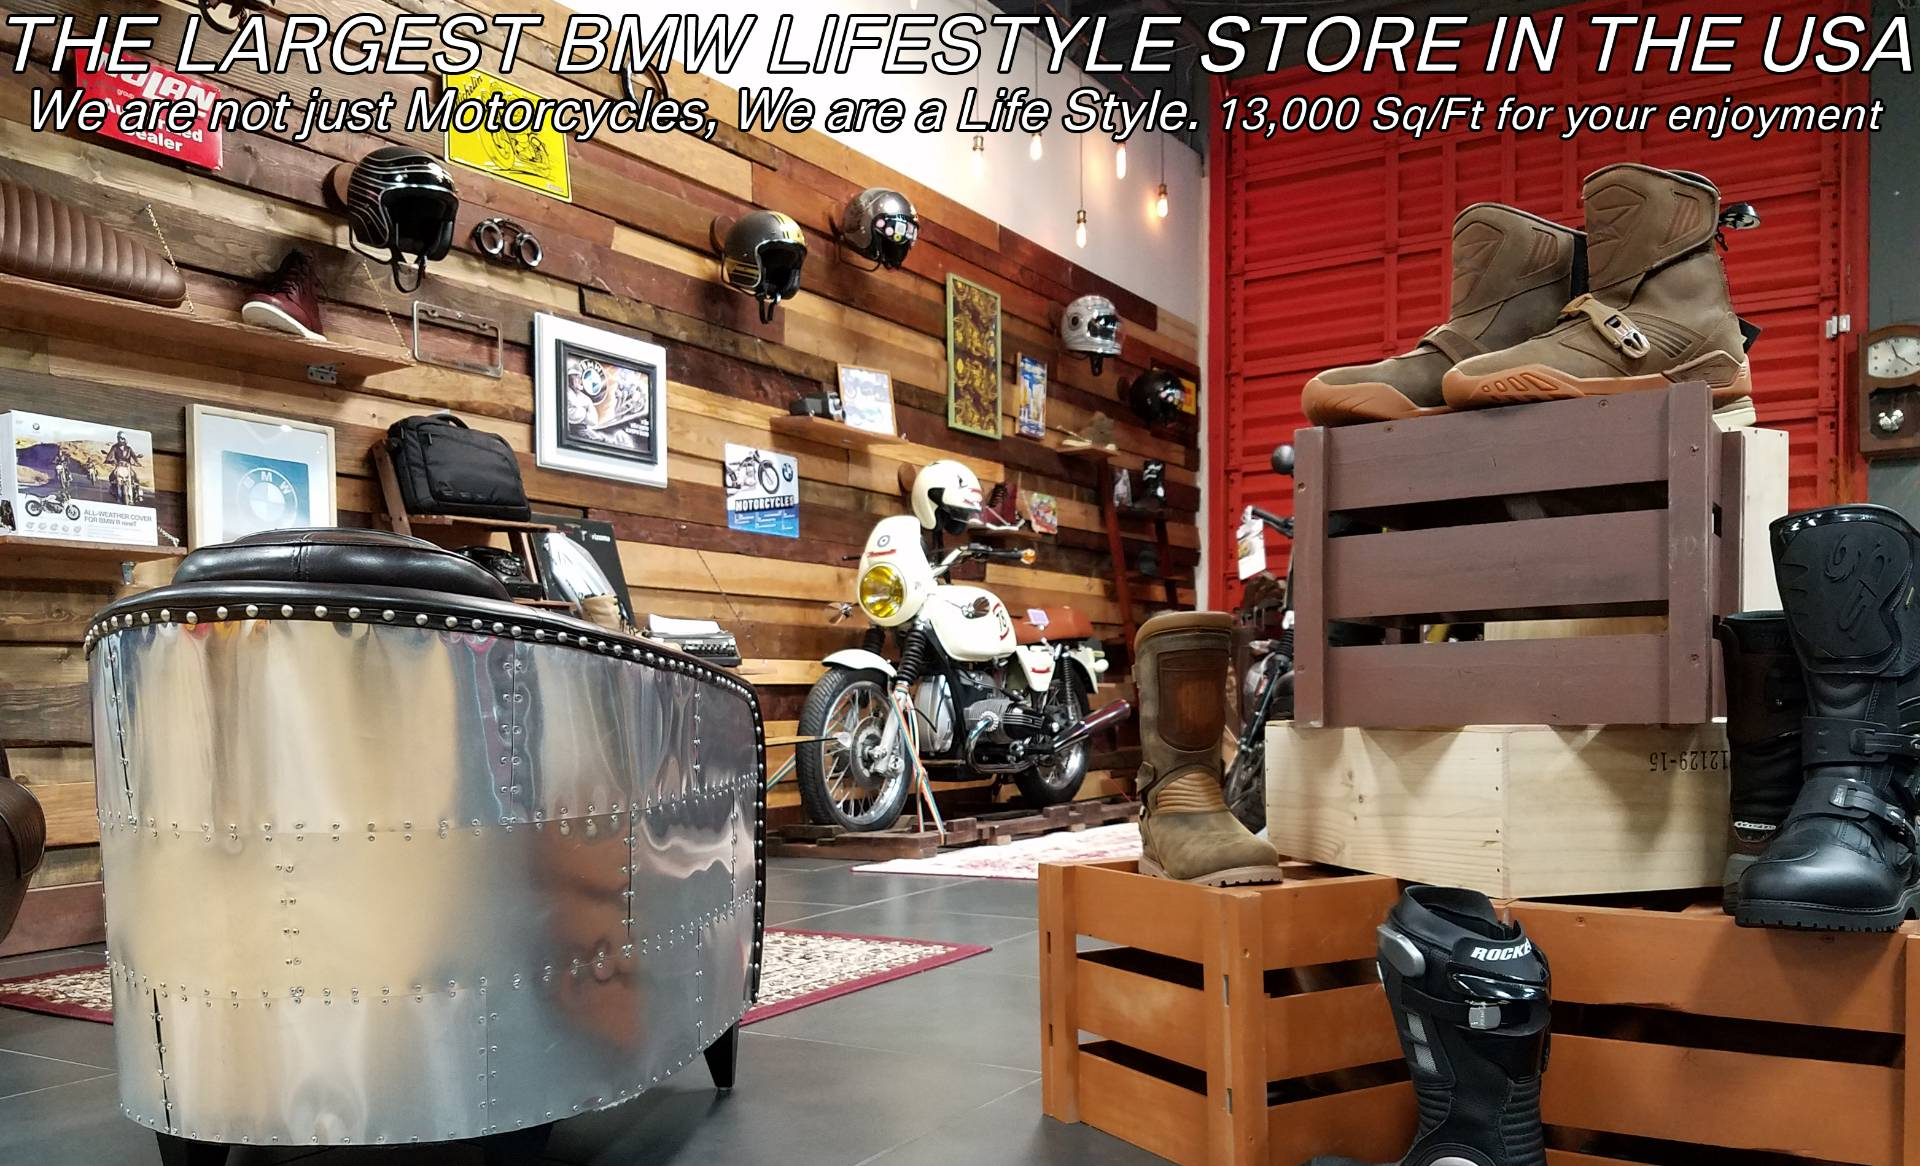 New 2019 BMW C 400 X for sale, BMW C 400X for sale, BMW Scooter, new BMW Scooter, C400X, BMW Motorcycles of Miami, Motorcycles of Miami, Motorcycles Miami, New Motorcycles, Used Motorcycles, pre-owned. #BMWMotorcyclesOfMiami #MotorcyclesOfMiami #MotorcyclesMiami - Photo 28